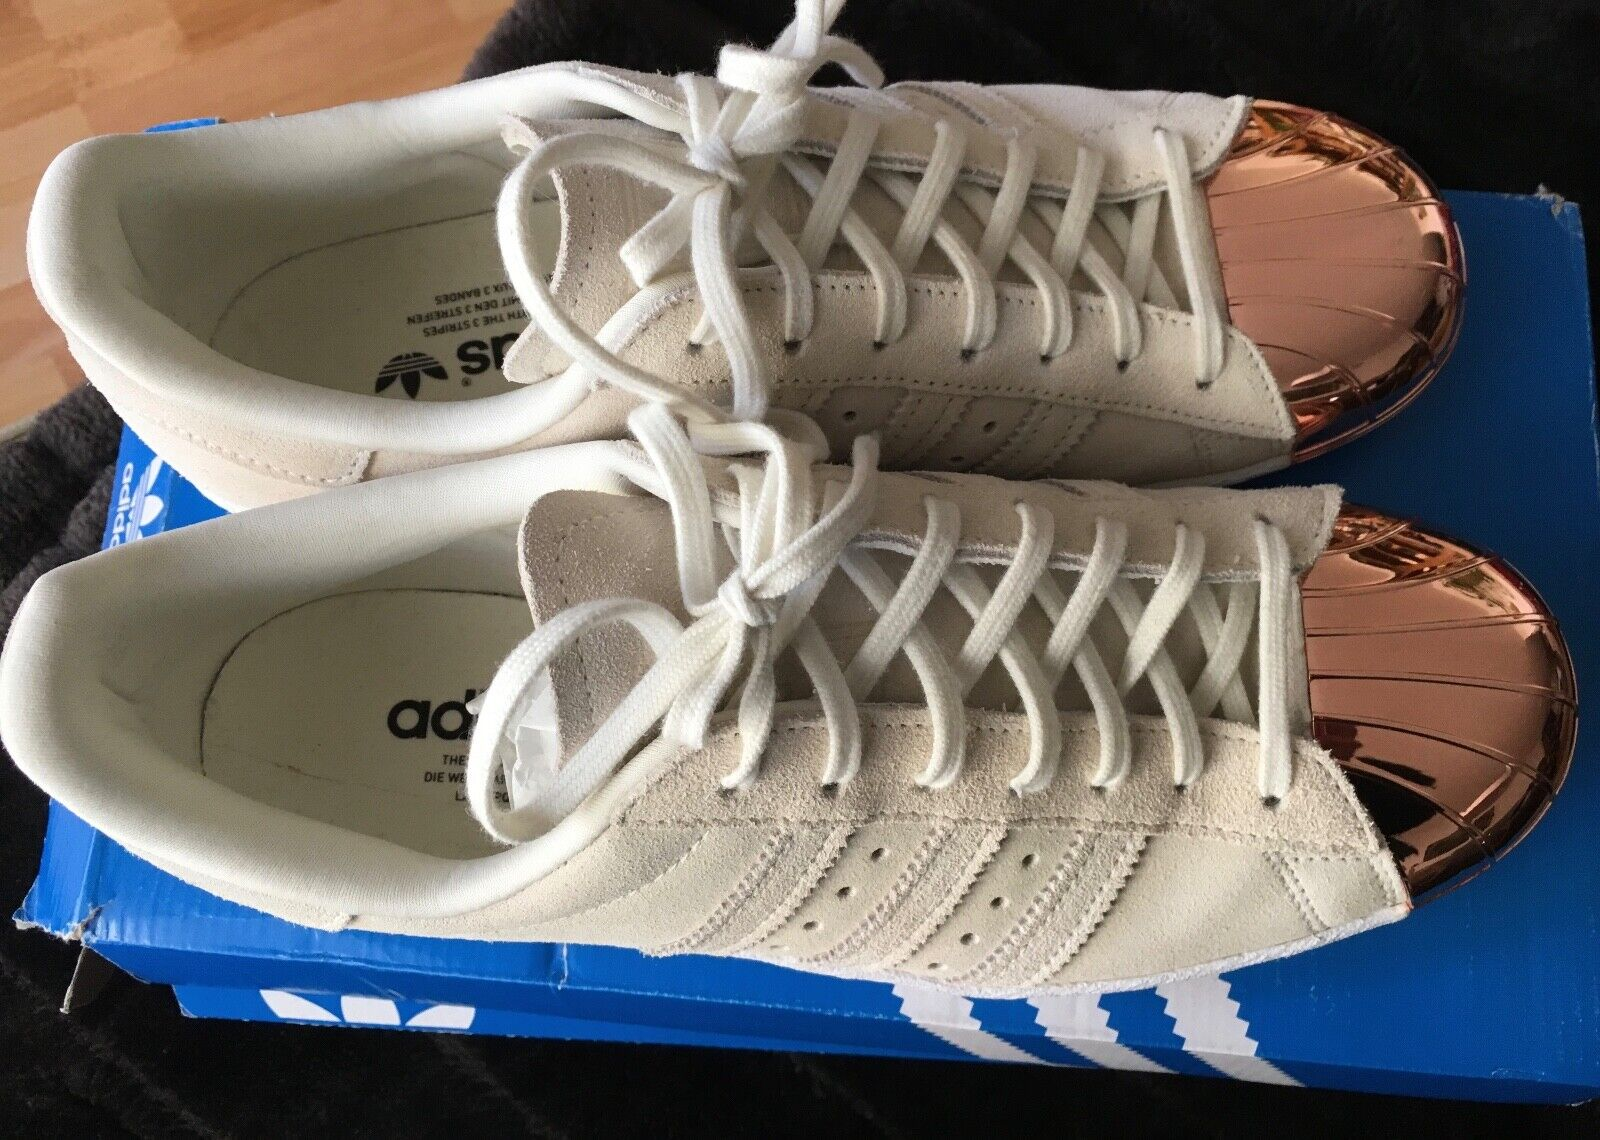 ADIDAS Superstar 80´s Metal Toe off White Rose Gold weiss Gr.40 ORIGINAL,limited